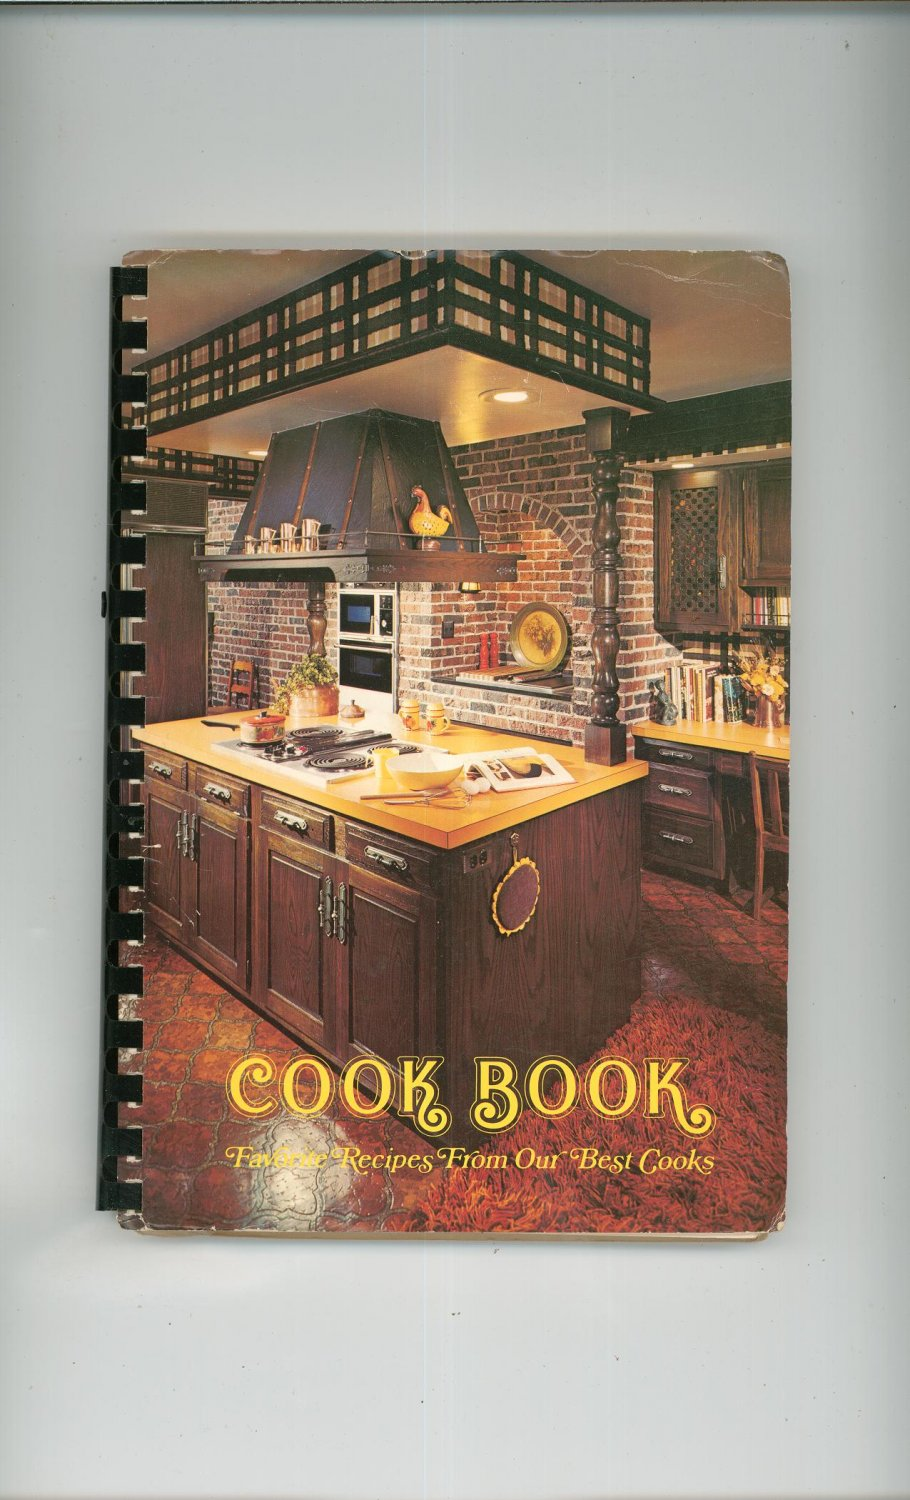 Vintage A Book Of Favorite Recipes Cookbook Regional Rochester Insurance Women's Assoc. New York1976